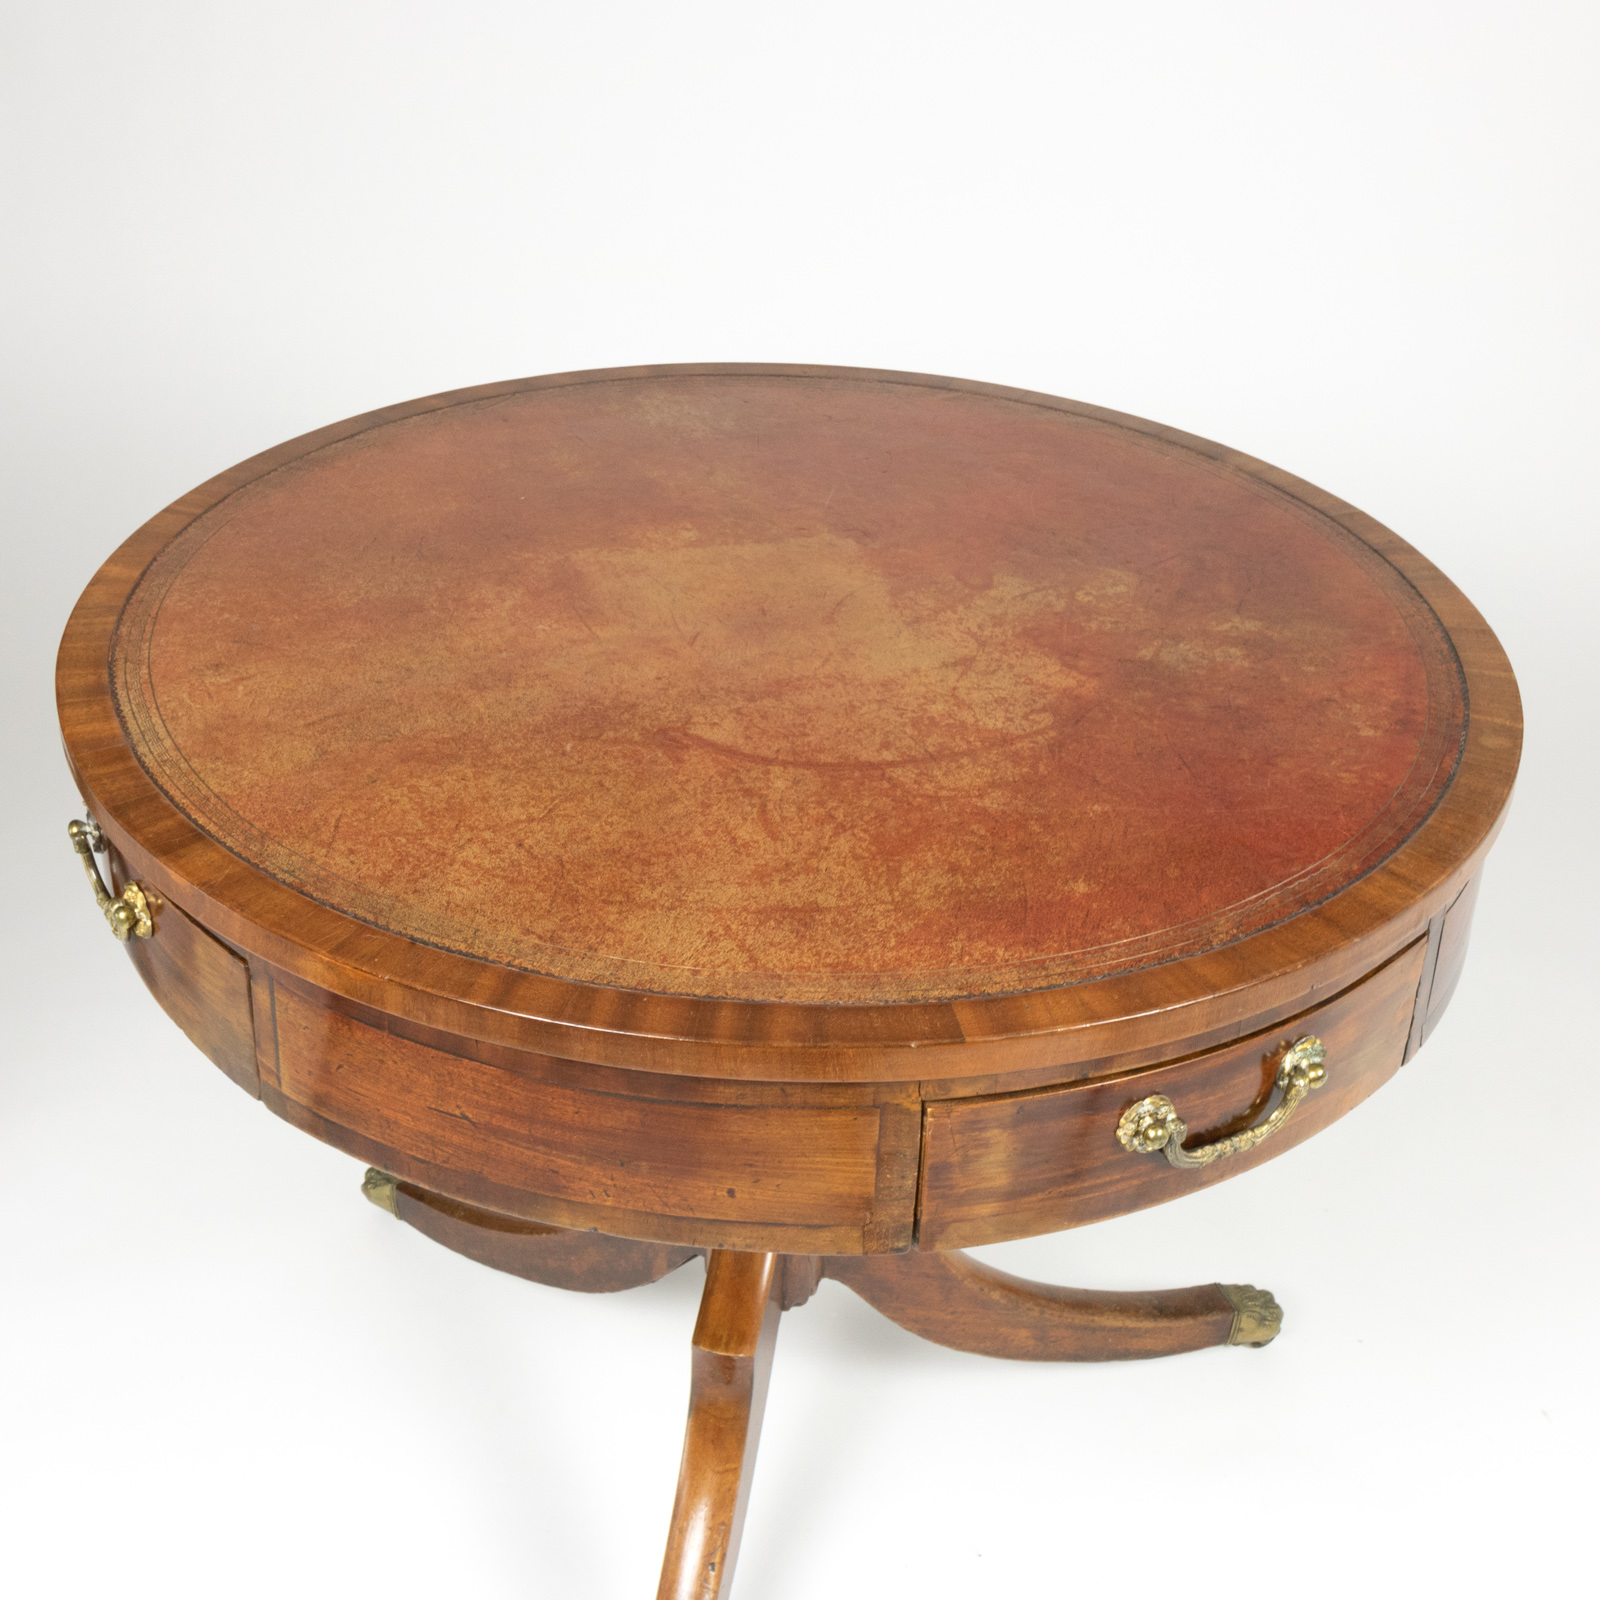 Regency Period Mahogany Drum Table With Embossed Leather Inset And Lion Paw Casters English Circa